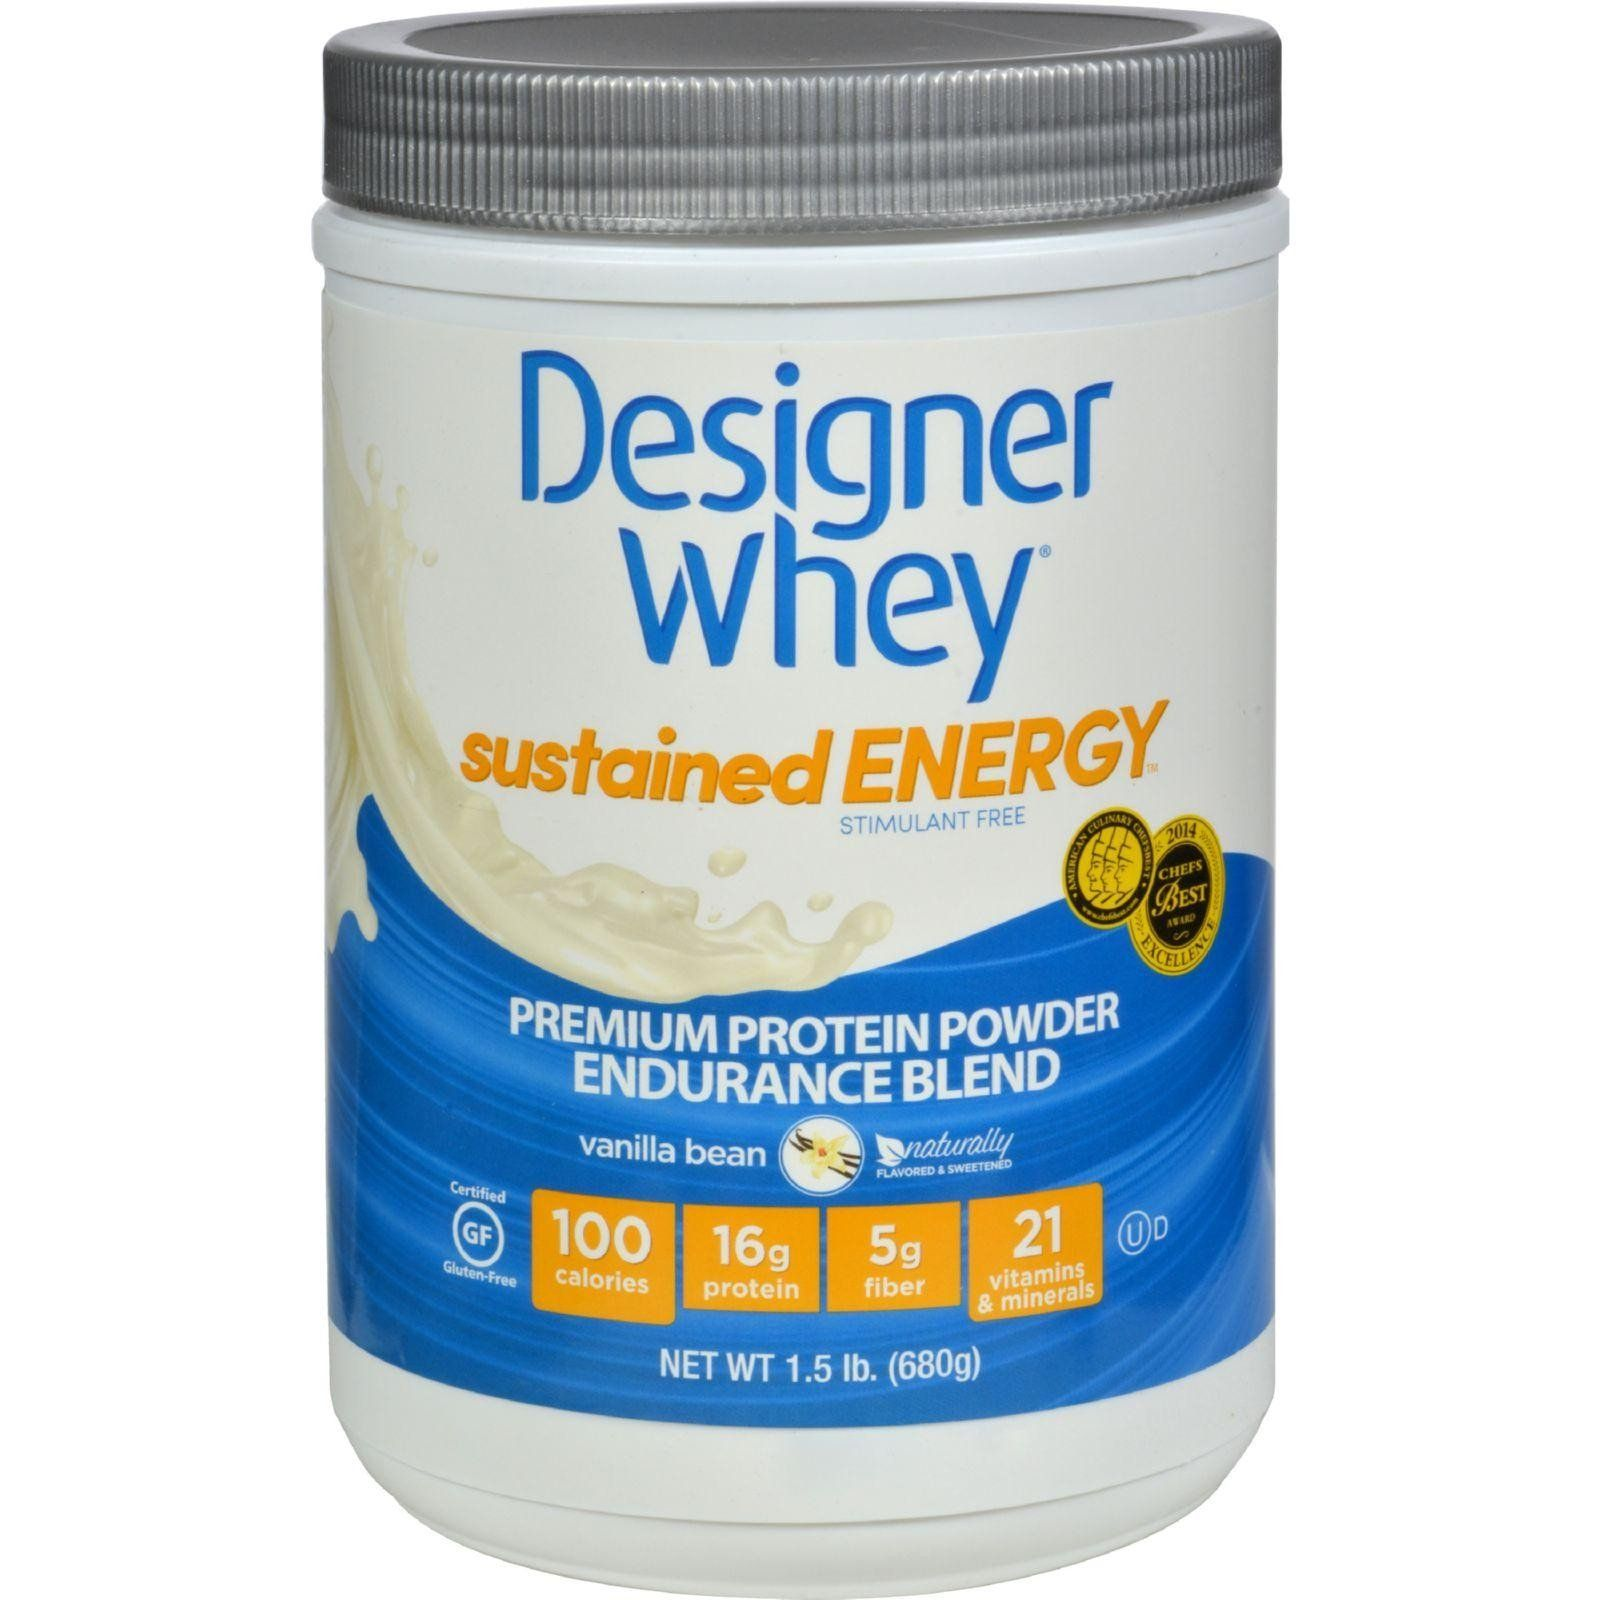 Designer Whey Sustained Energy is specifically formulated